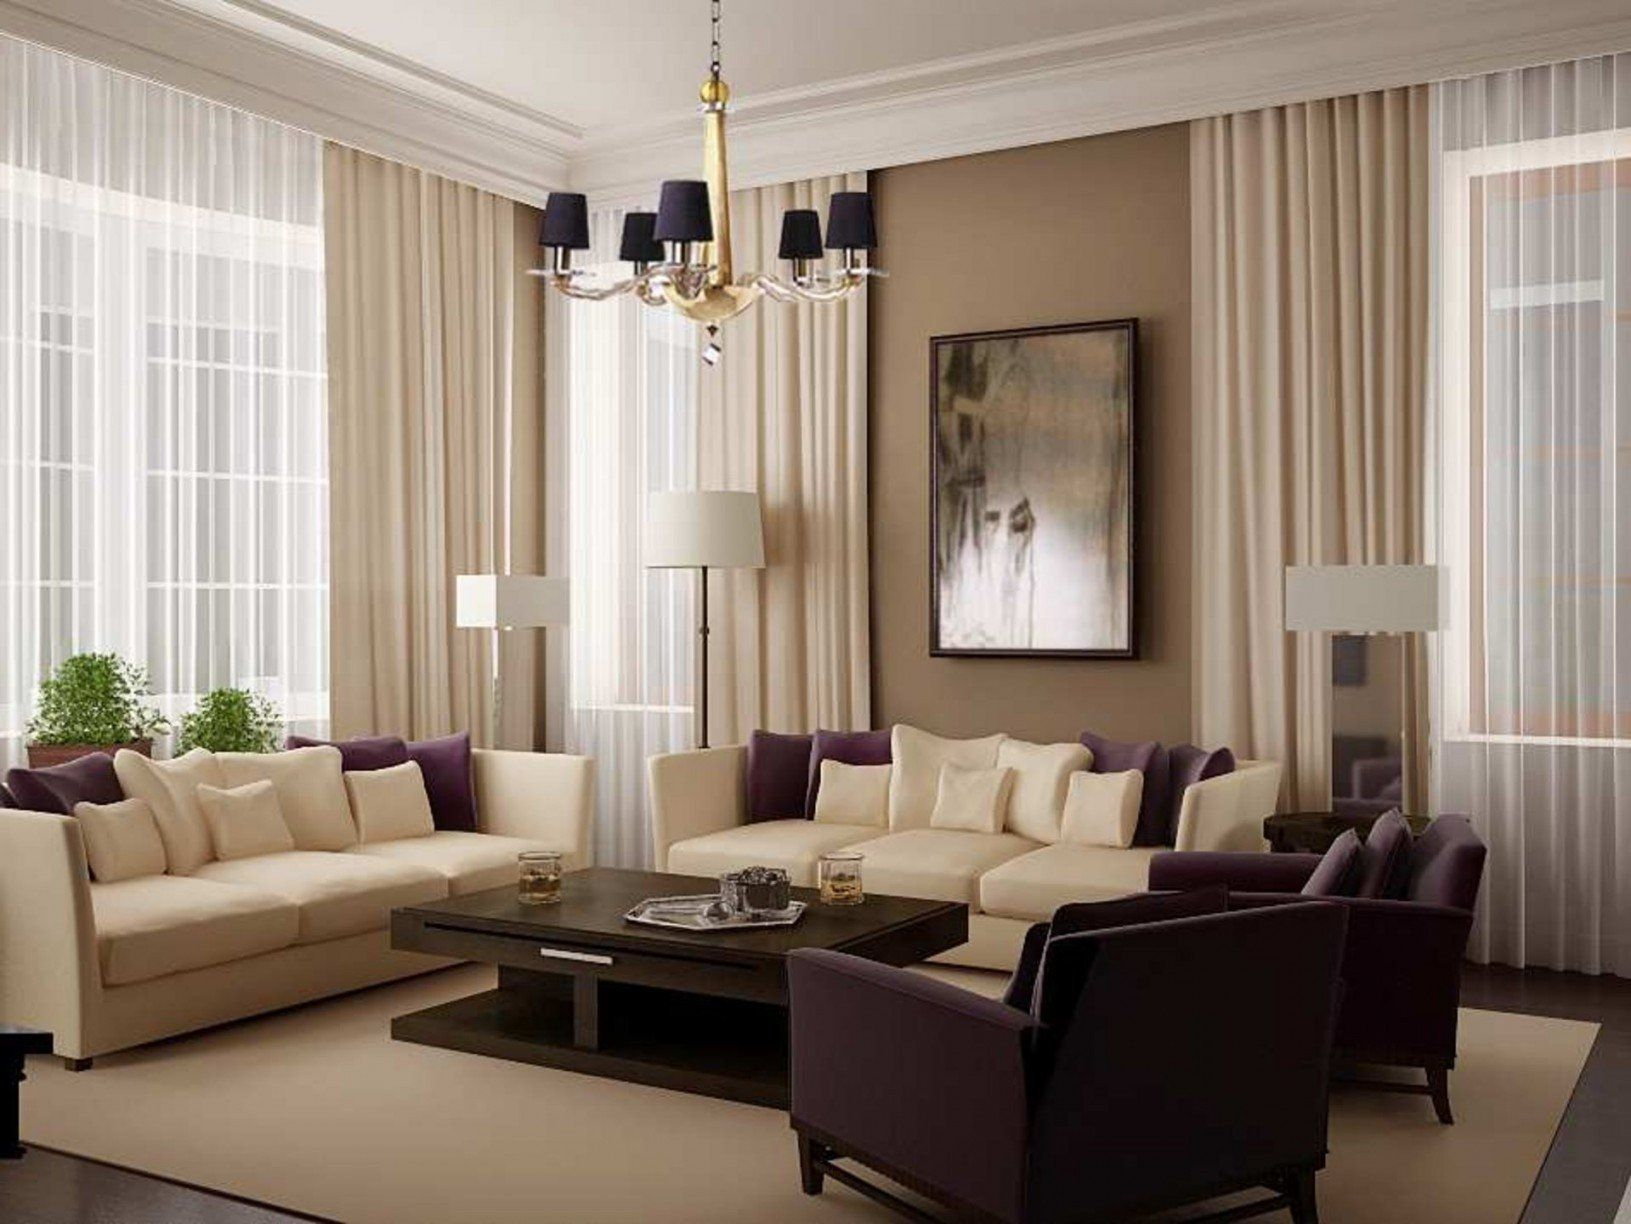 Light Coloured Living Room Ideas Light Brown Living Room Ideas White Curtain Tan Wall Col In 2020 Brown Living Room Decor Living Room Decor Apartment Brown Living Room #tan #curtains #for #living #room